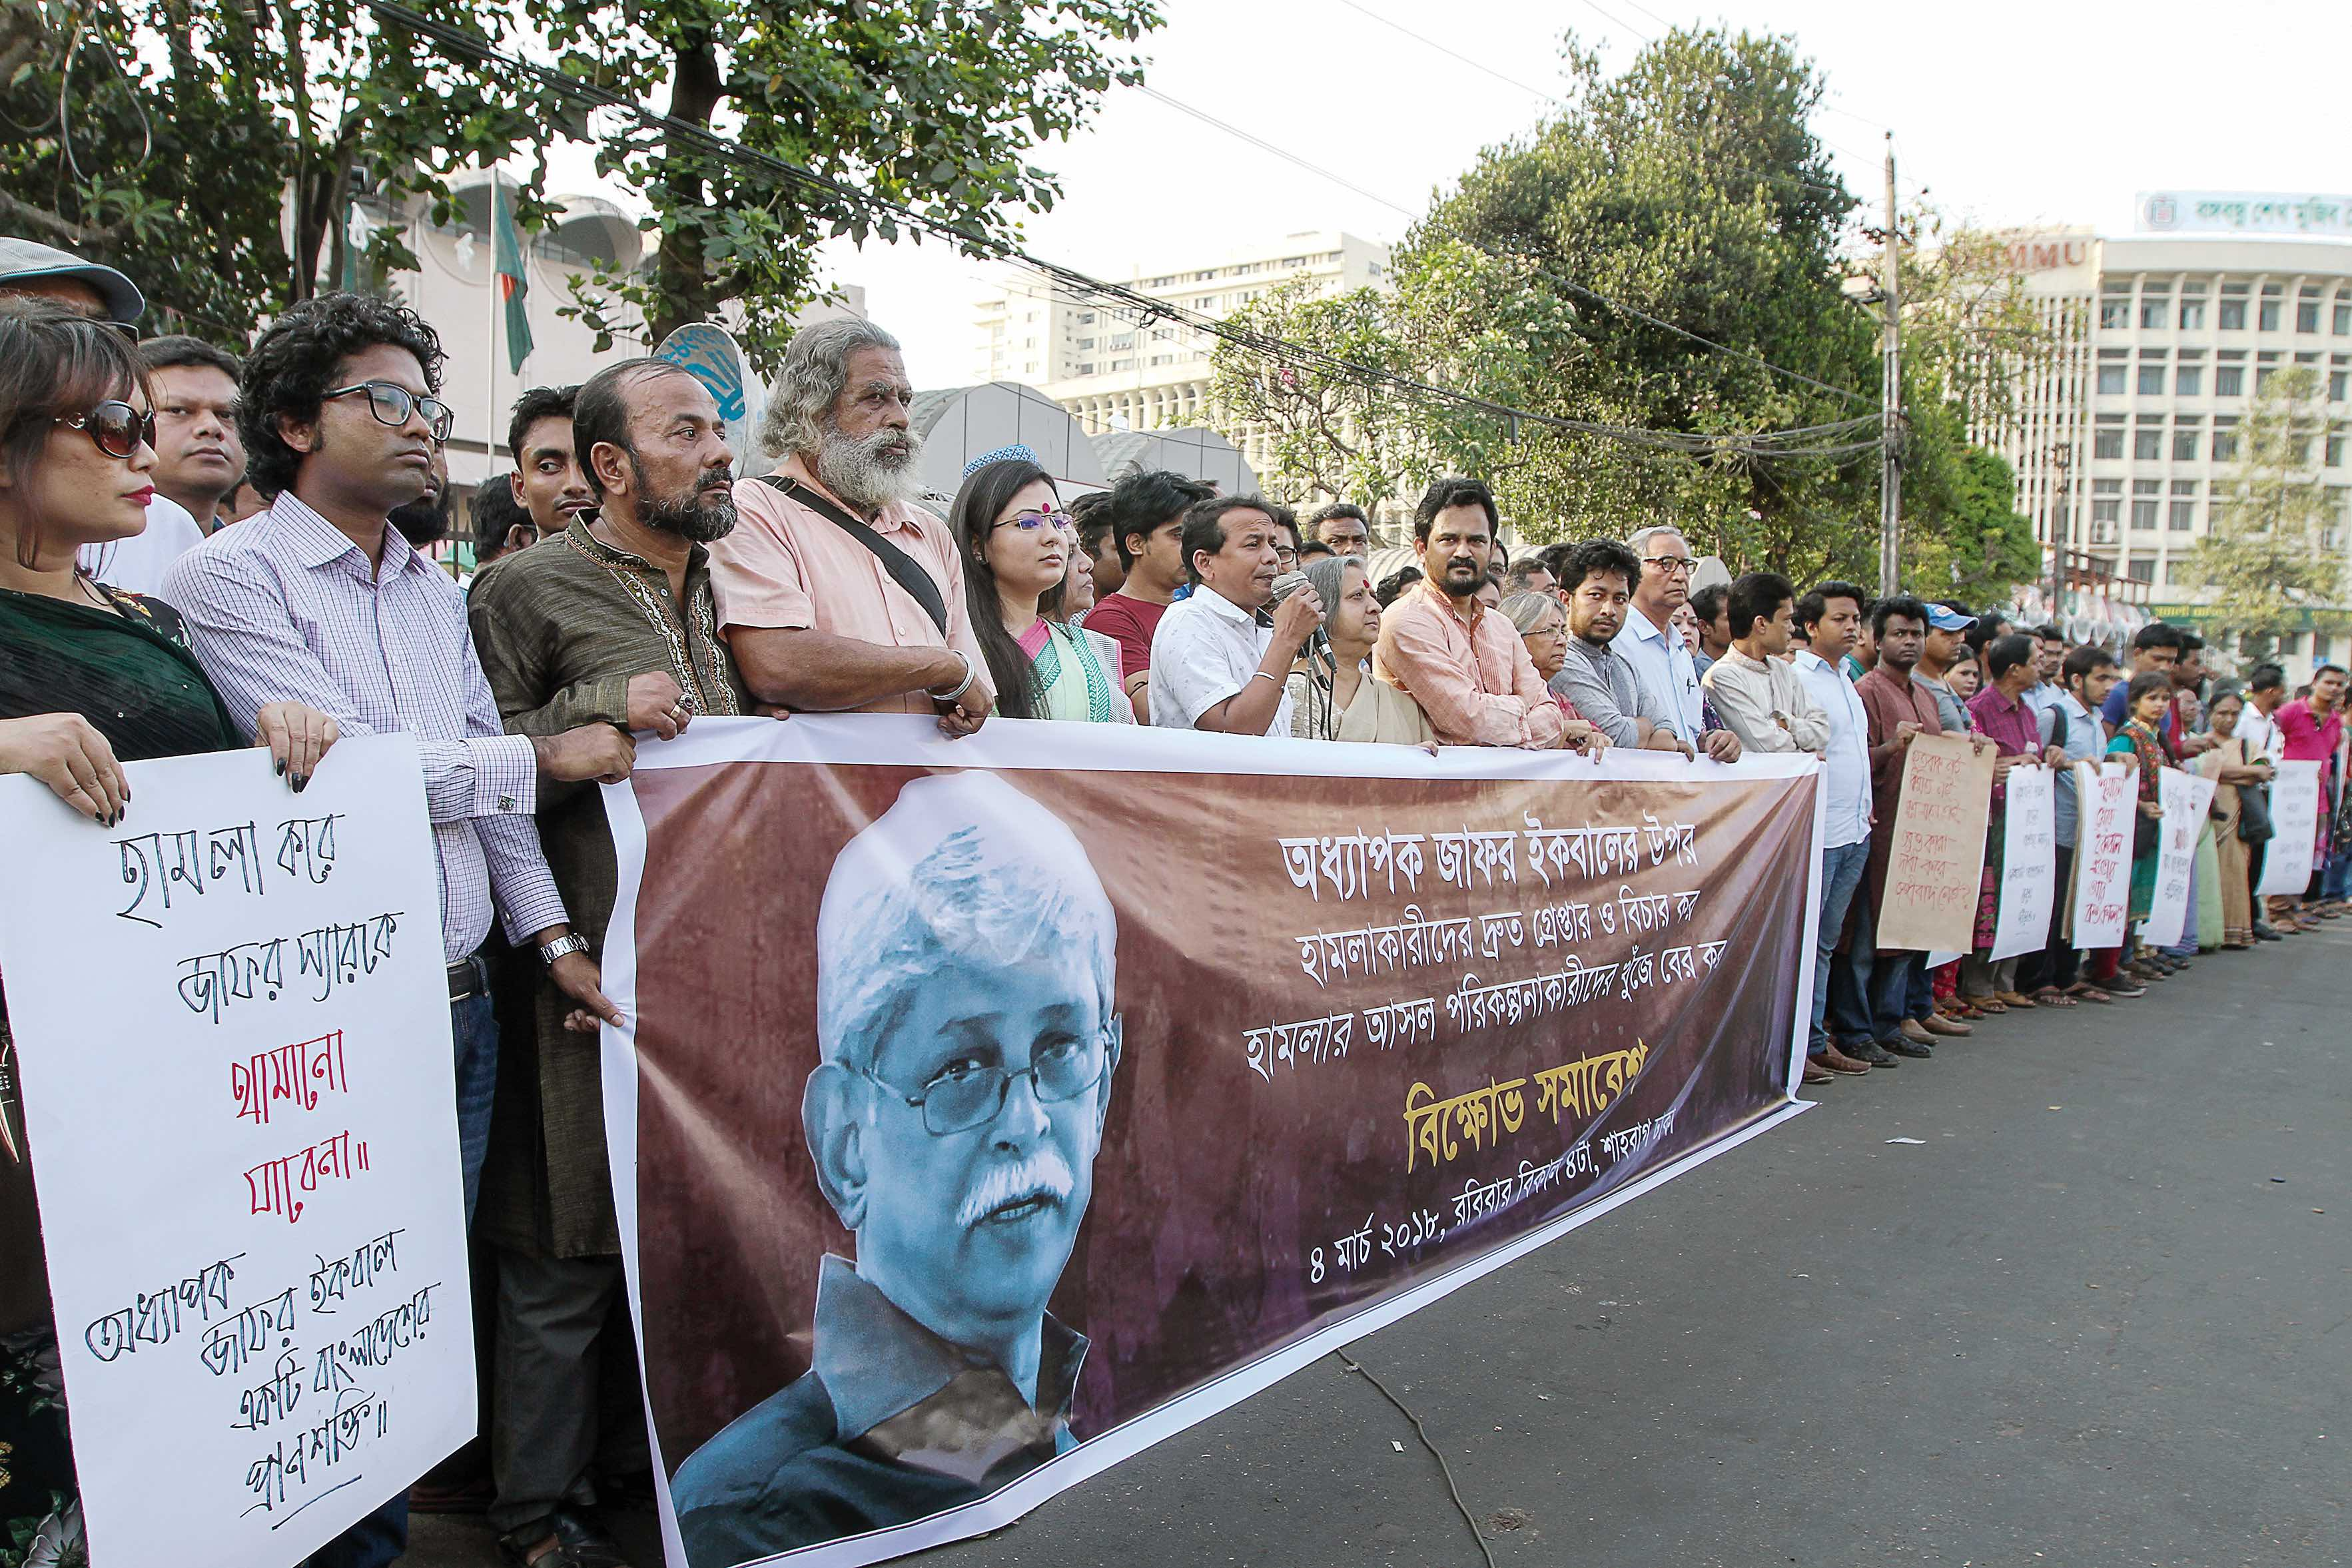 Explaining the Attack on Zafar Iqbal, One of Bangladesh's Top Academics